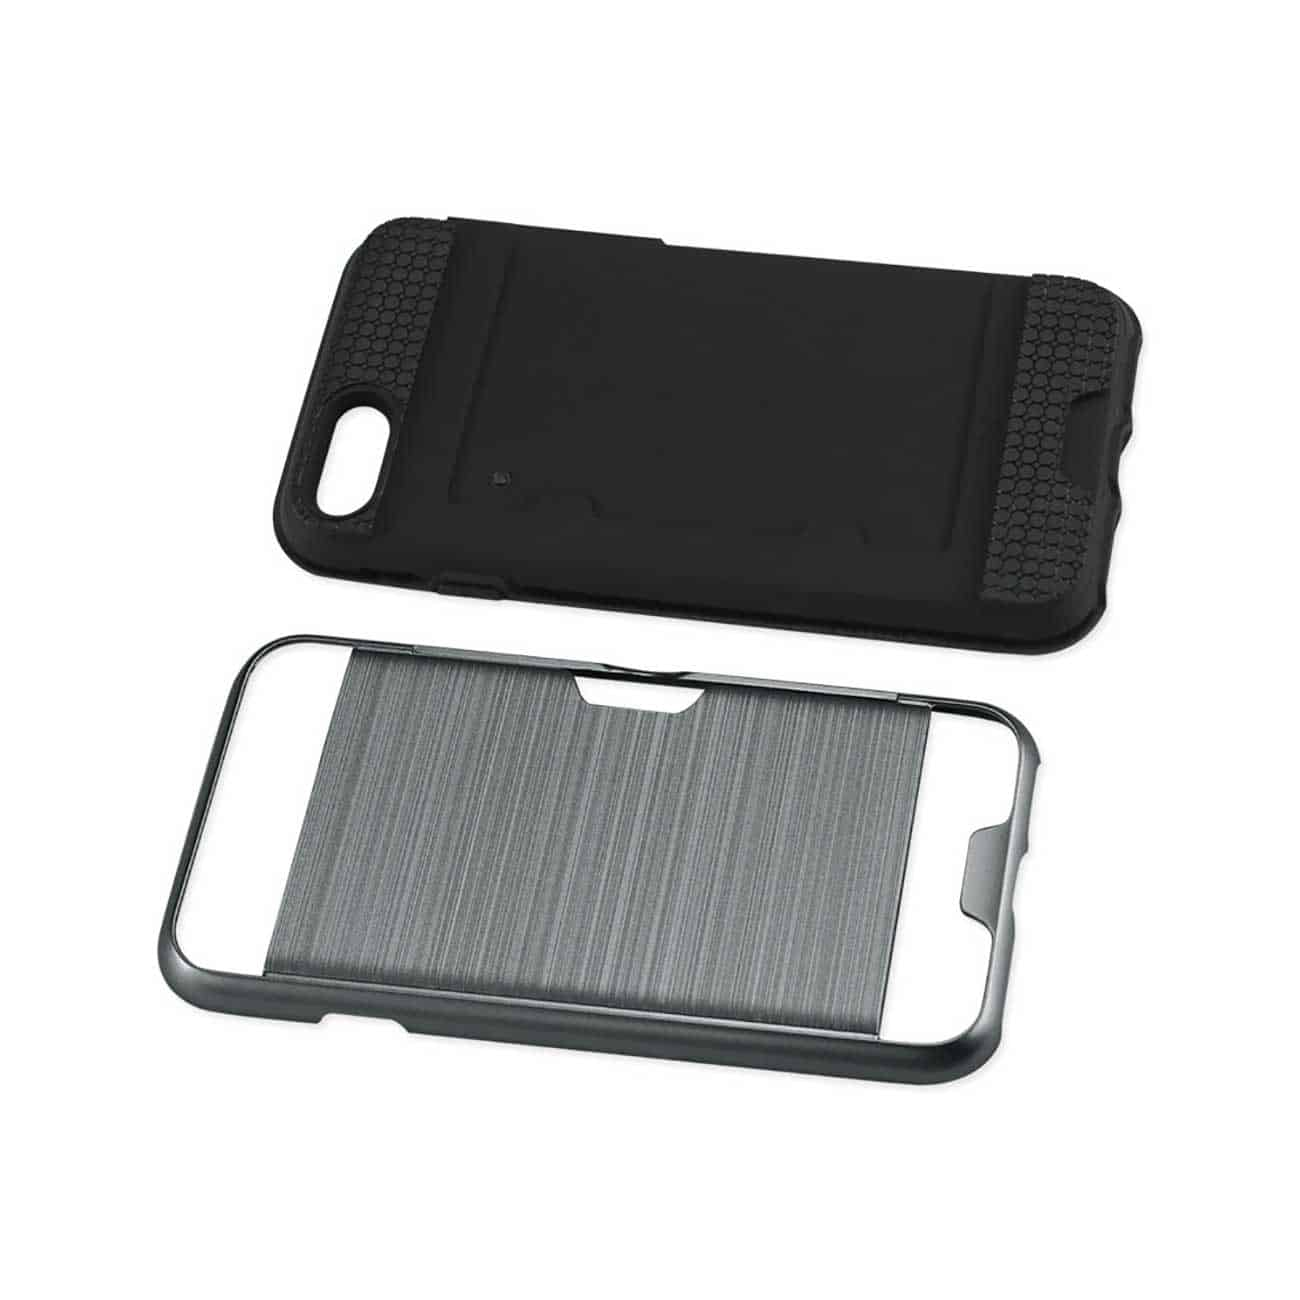 IPHONE 7/ 6/ 6S SLIM ARMOR HYBRID CASE WITH CARD HOLDER IN GRAY